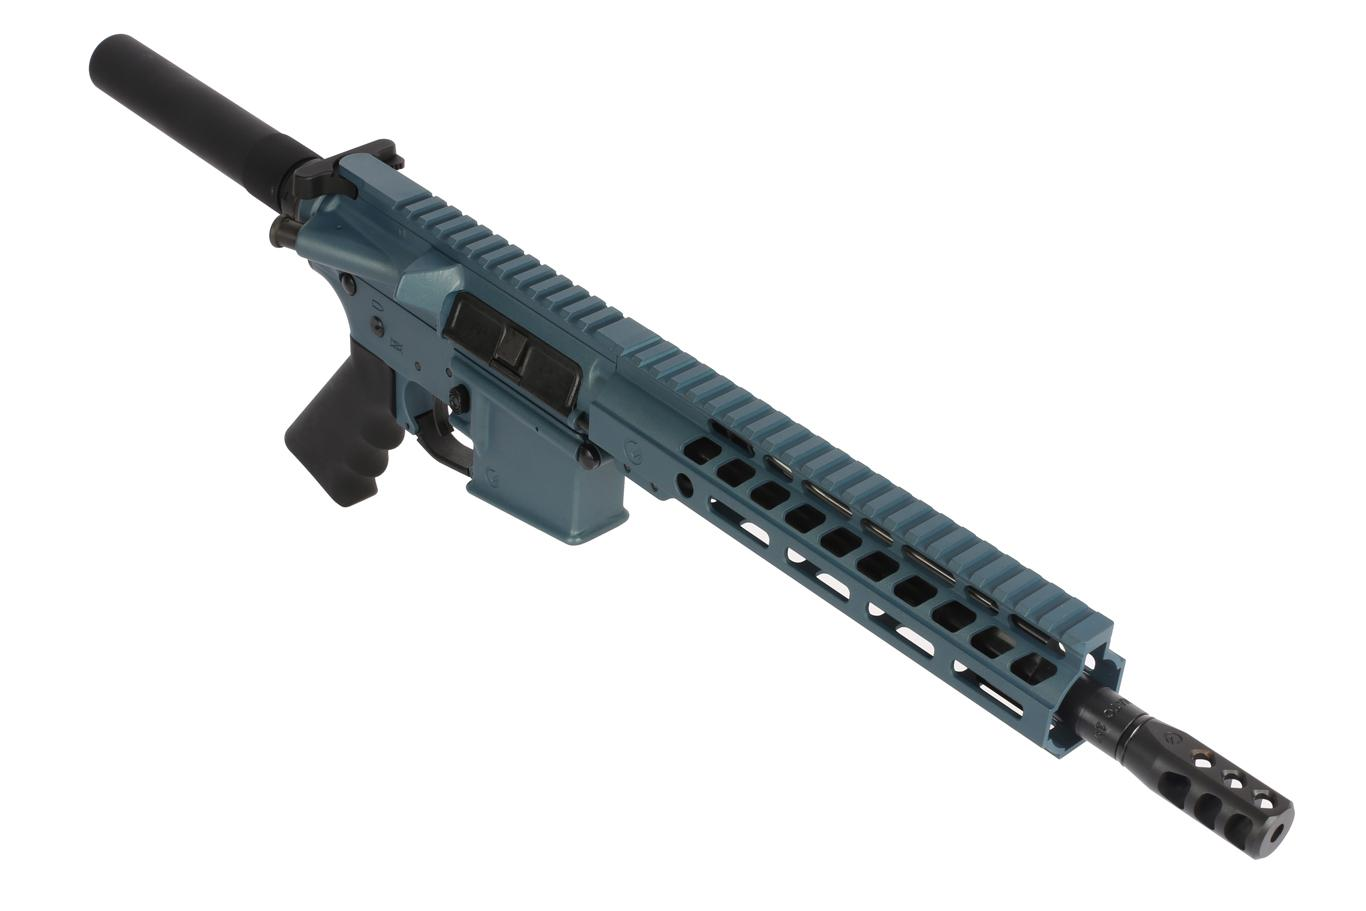 The Ghost Firearms AR15 Pistol with 10.5 inch 5.56 nato Barrel has a 9 inch m-lok handguard